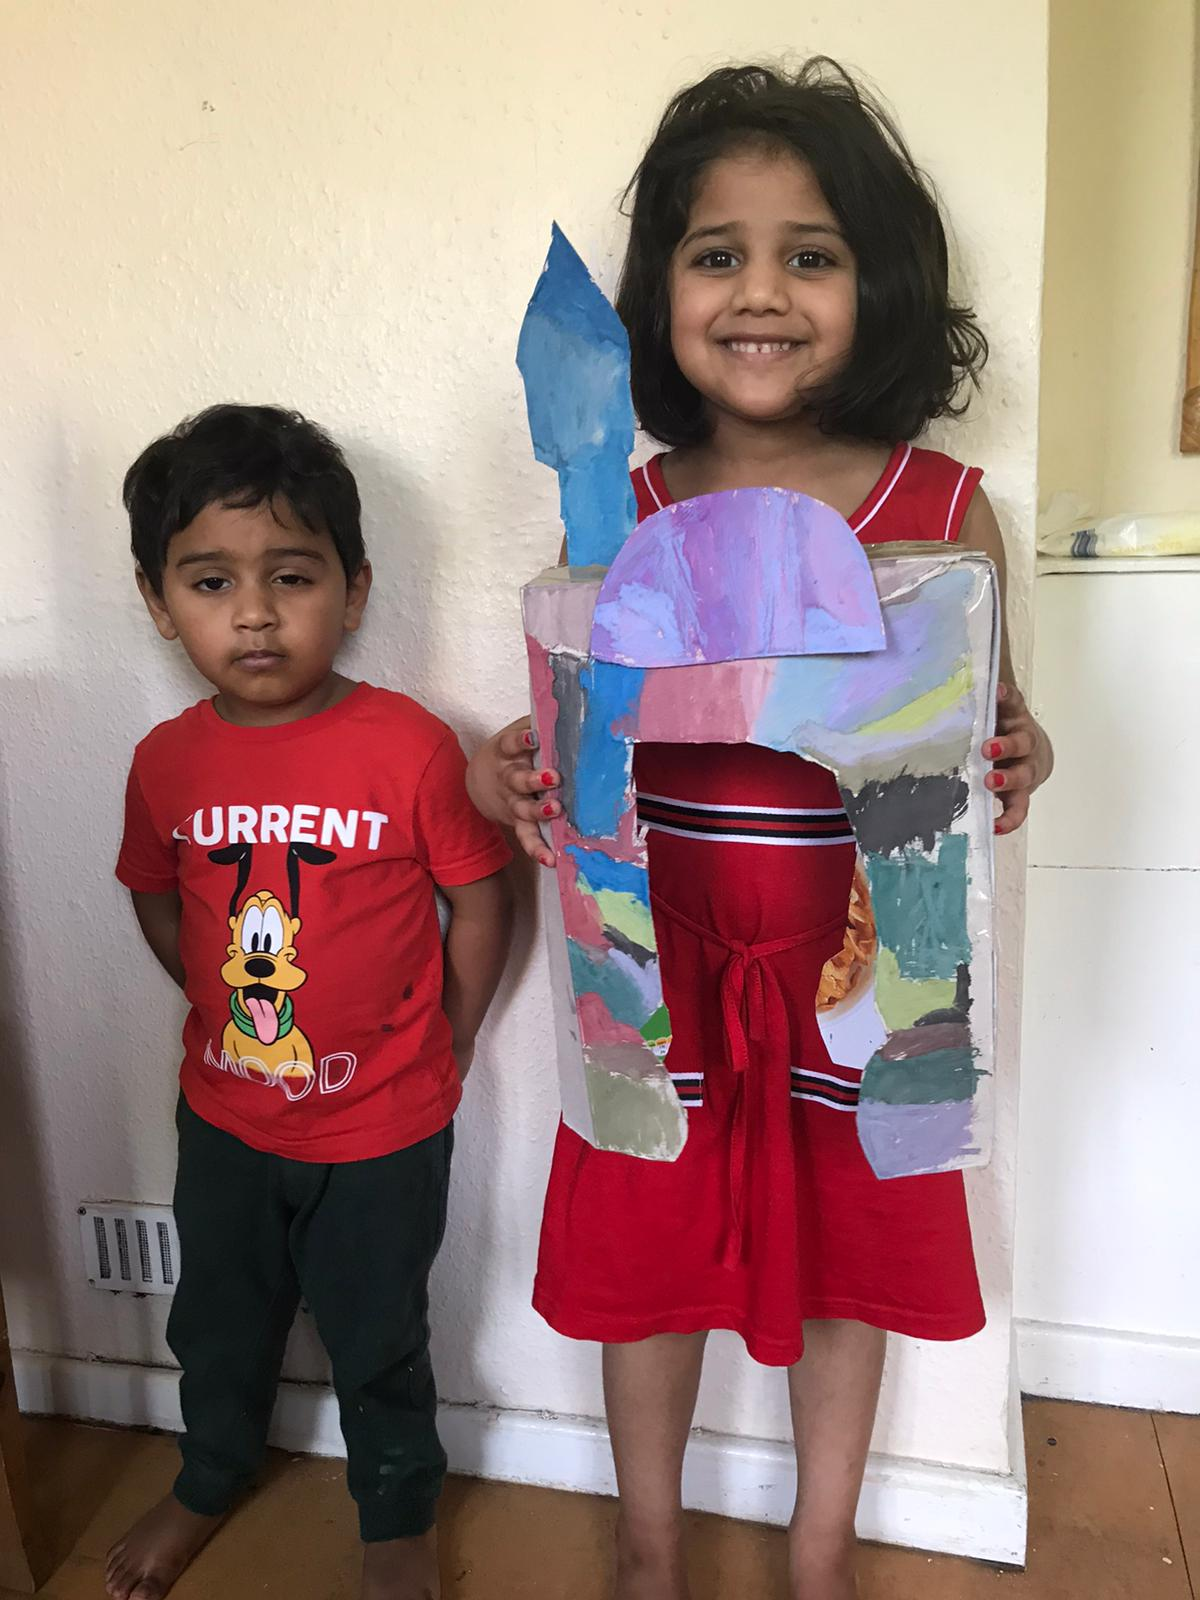 Two beautiful, happy children showing off their work, one boy and one girl